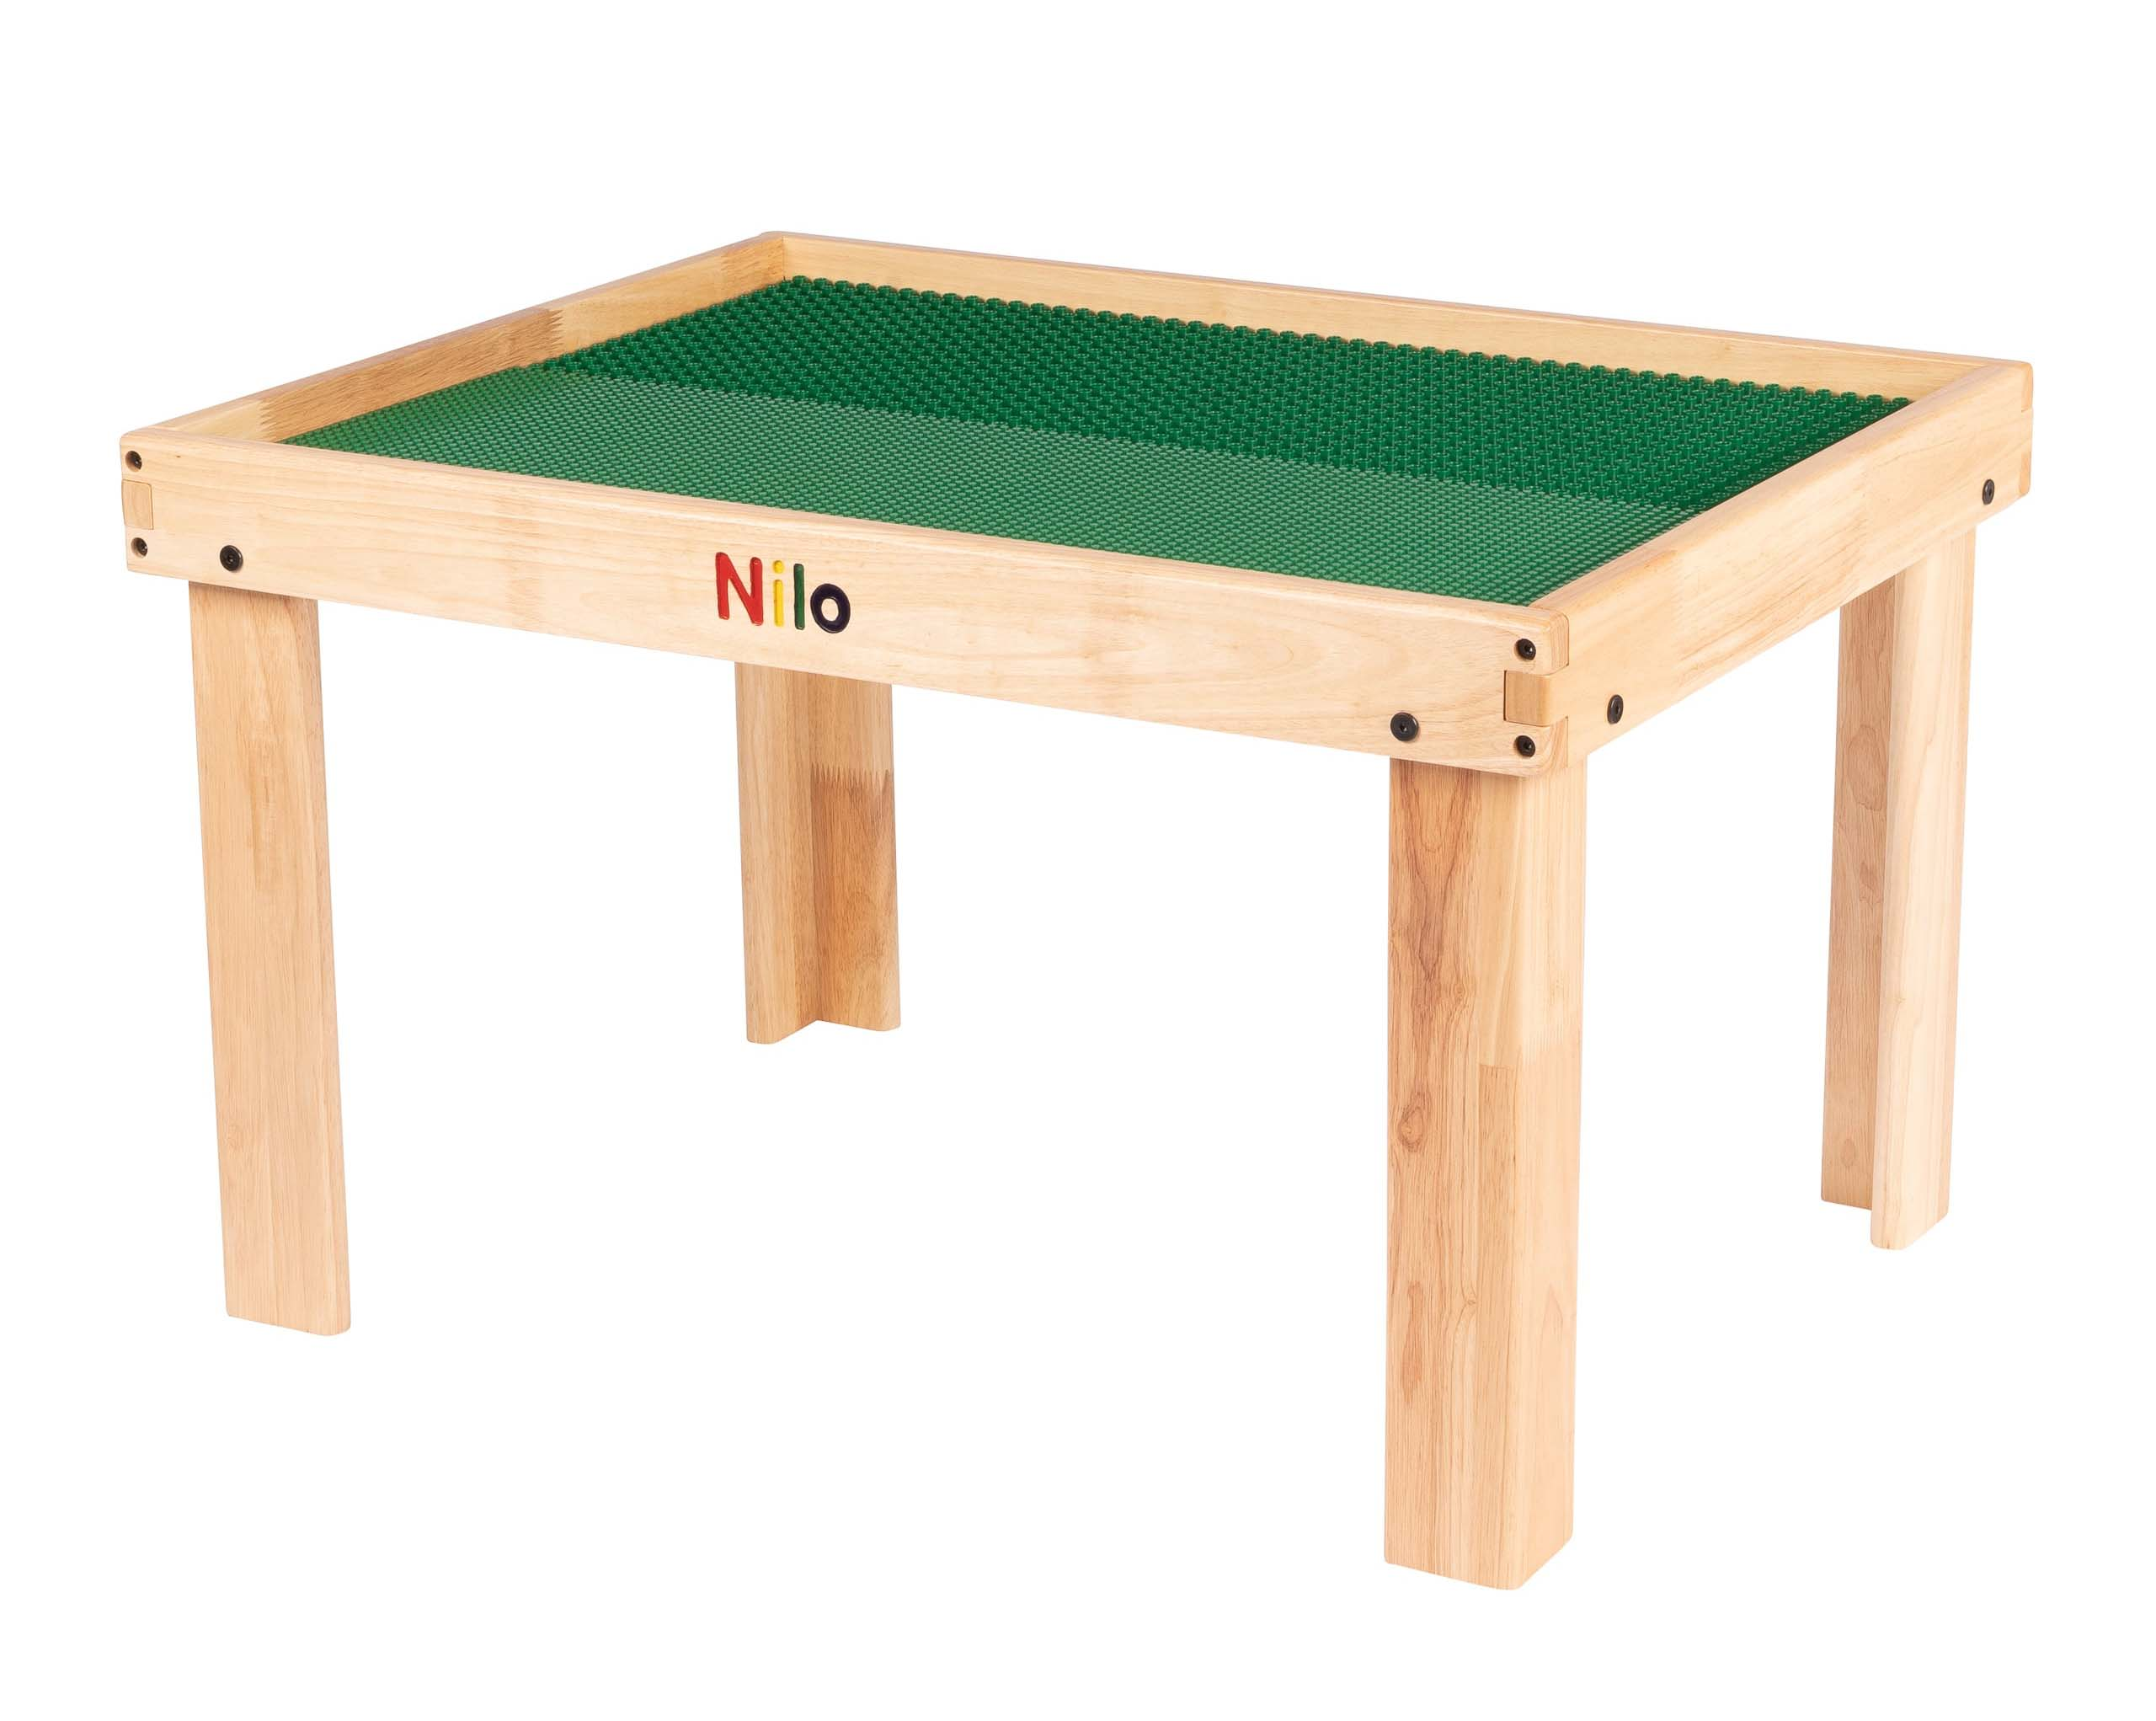 toddler activity table lego table with green baseplates for lego duplo